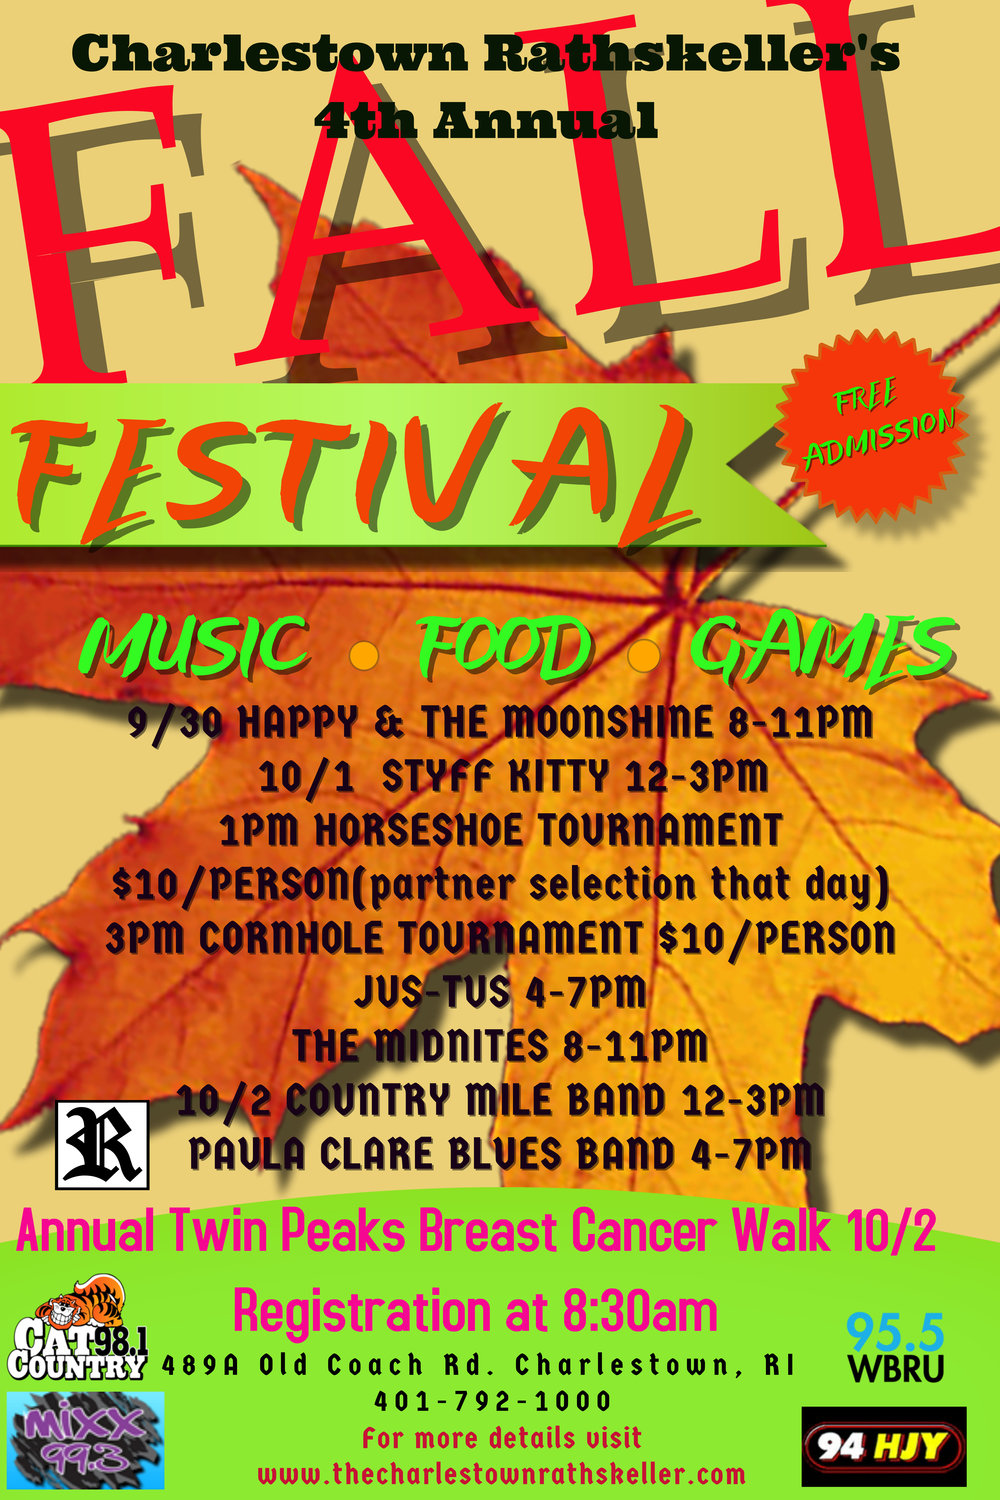 Copy of fall festival.jpg